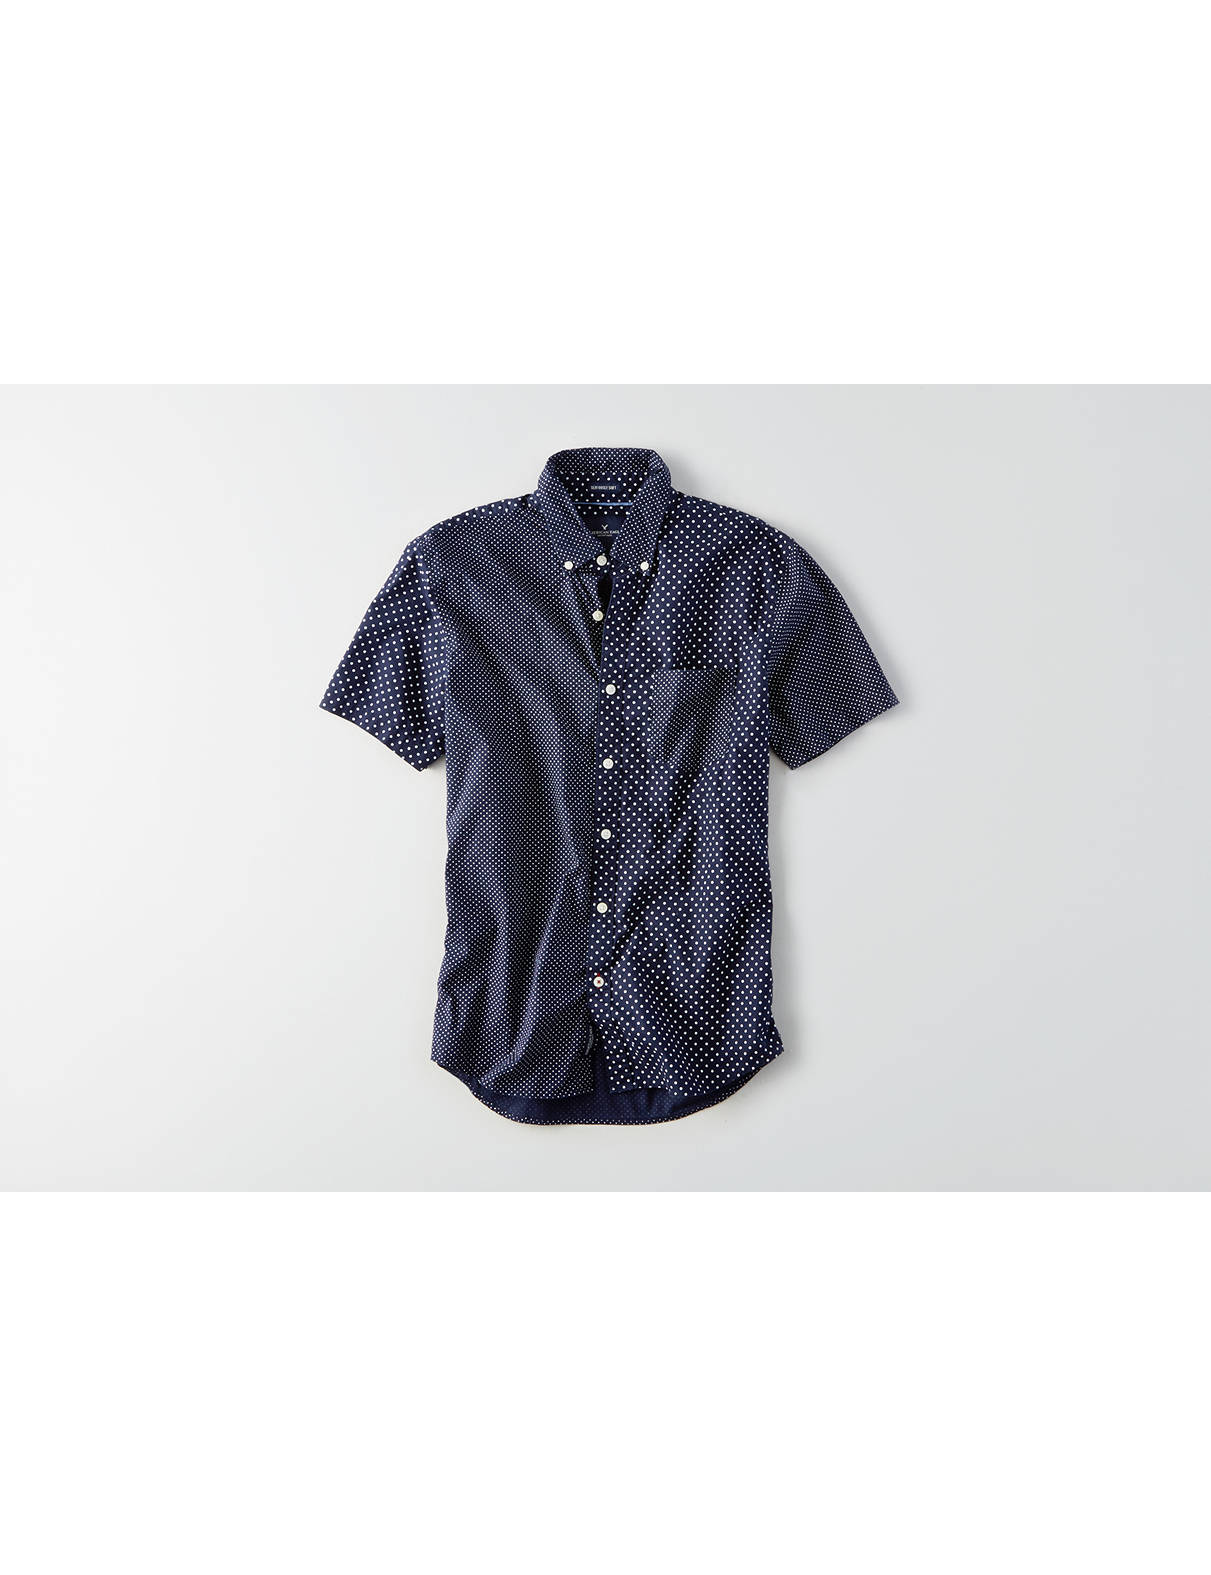 Men's Clearance - Shirts | American Eagle Outfitters